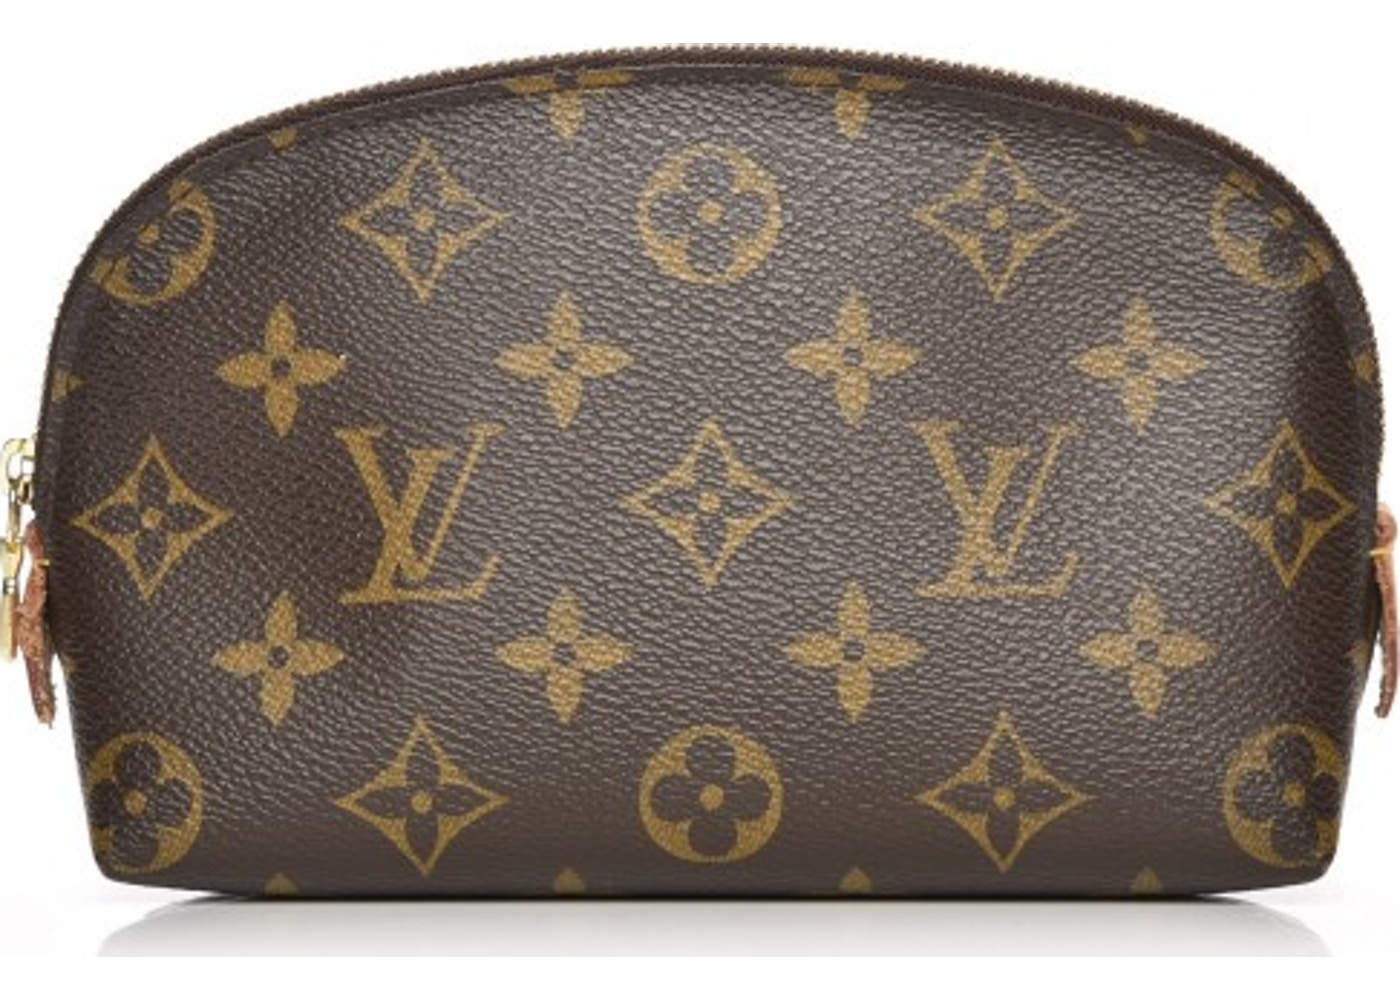 742fbc6120f1 Louis Vuitton Cosmetic Pouch Monogram